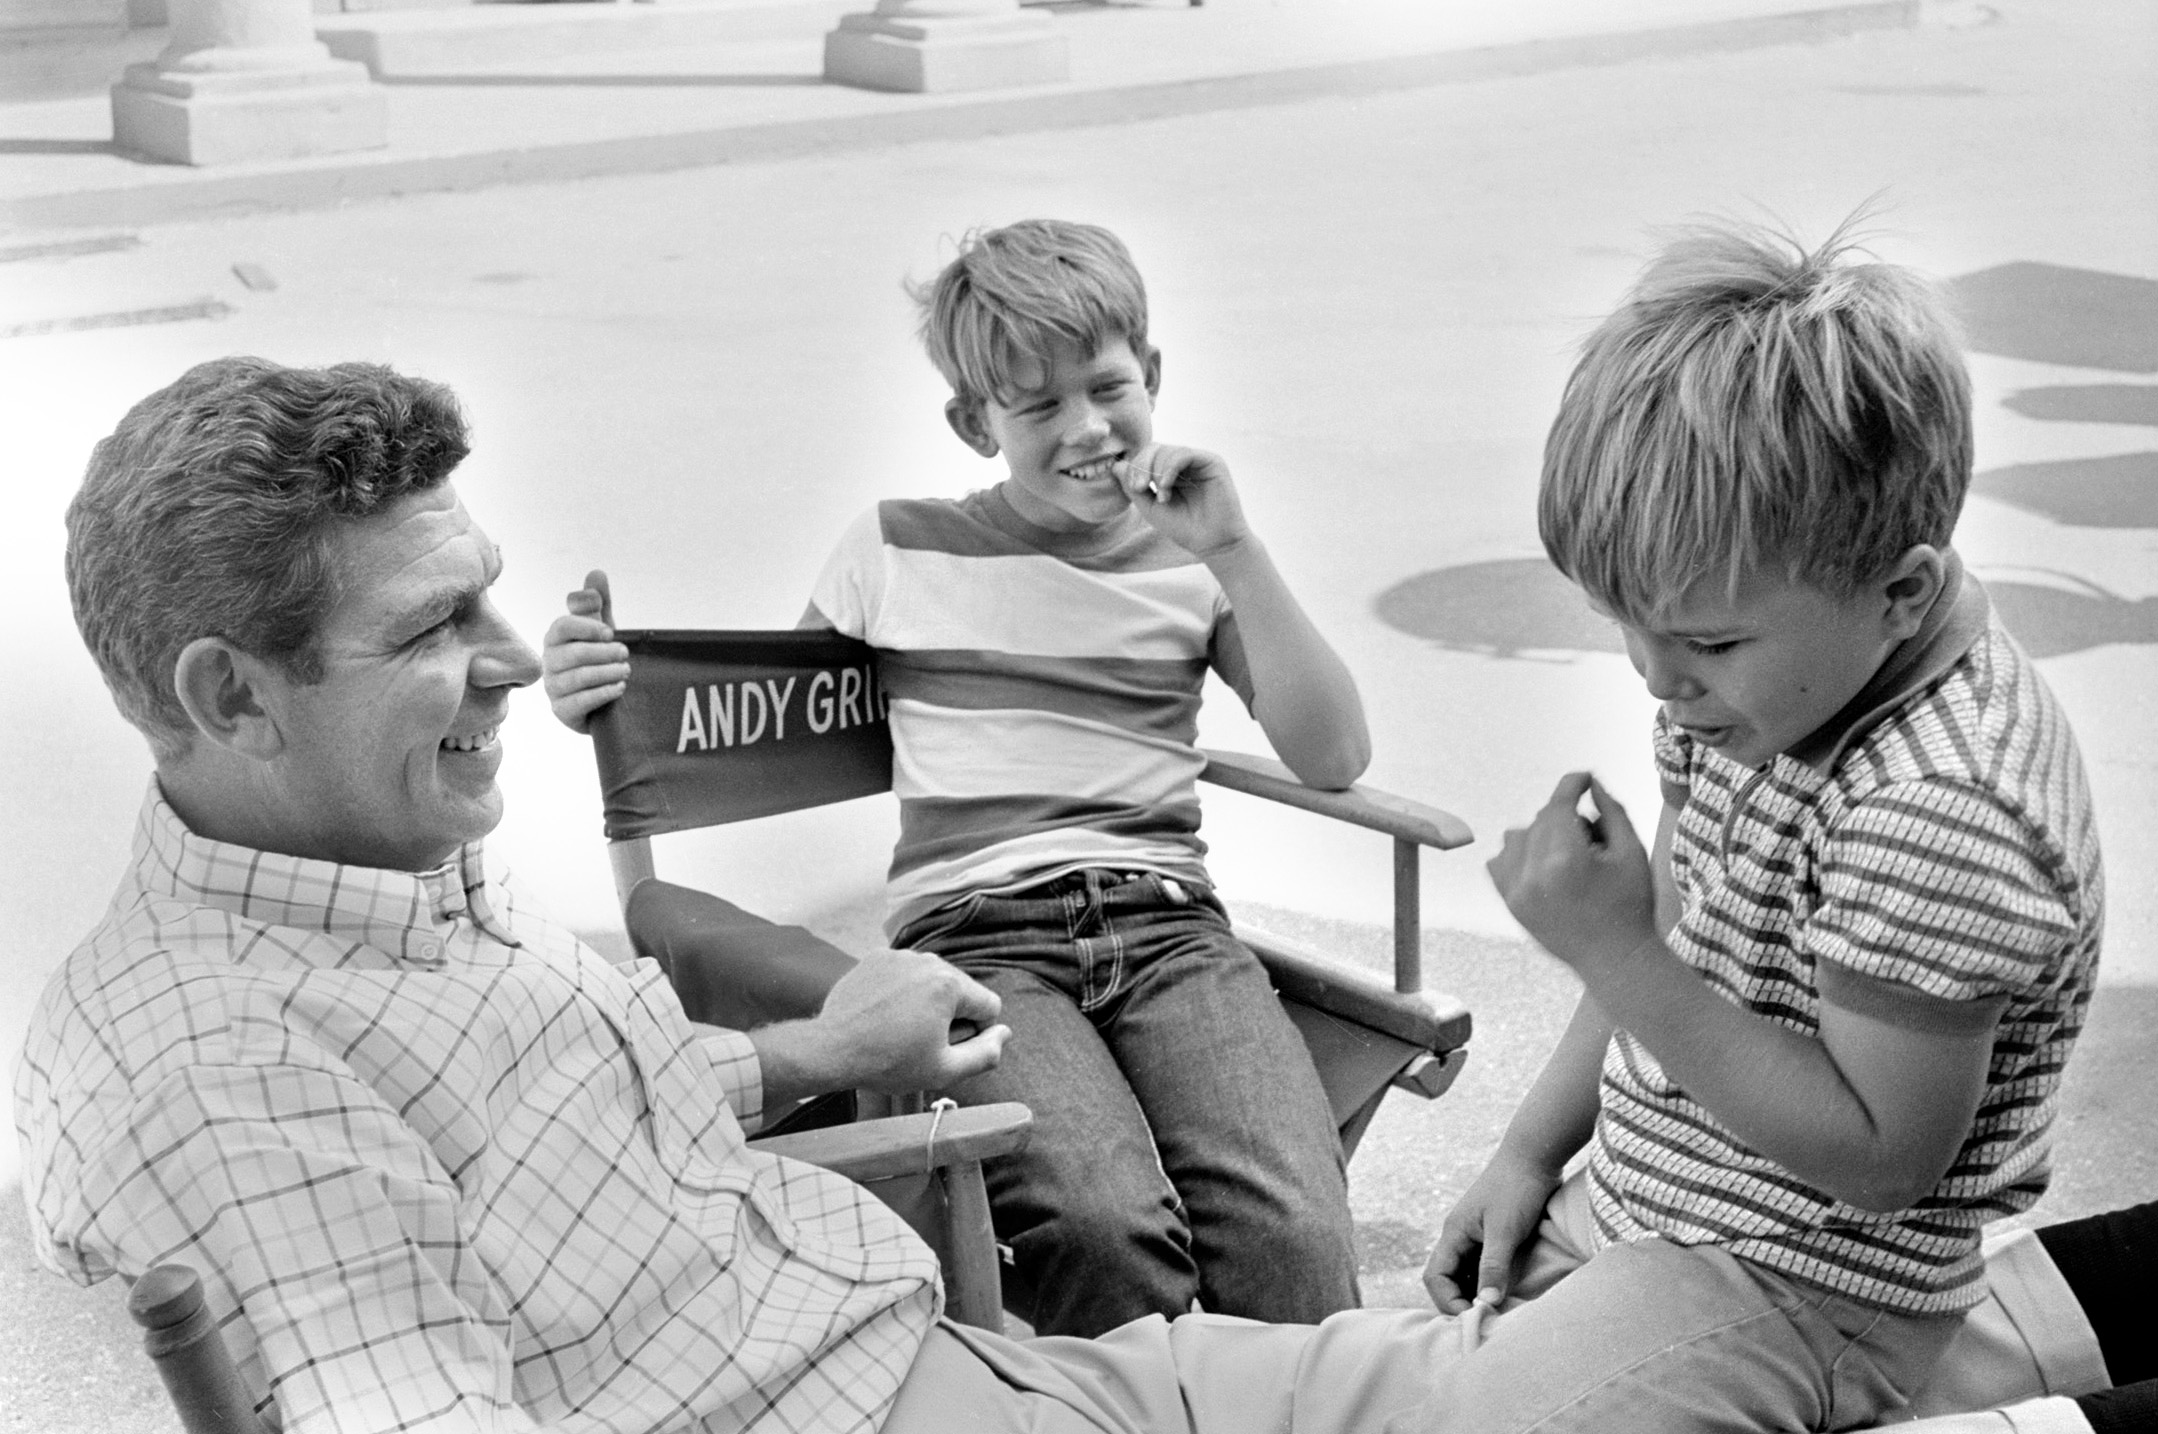 Actors Andy Griffith, Ron Howard, and Clint Howard on the 'Andy Griffith Show' set